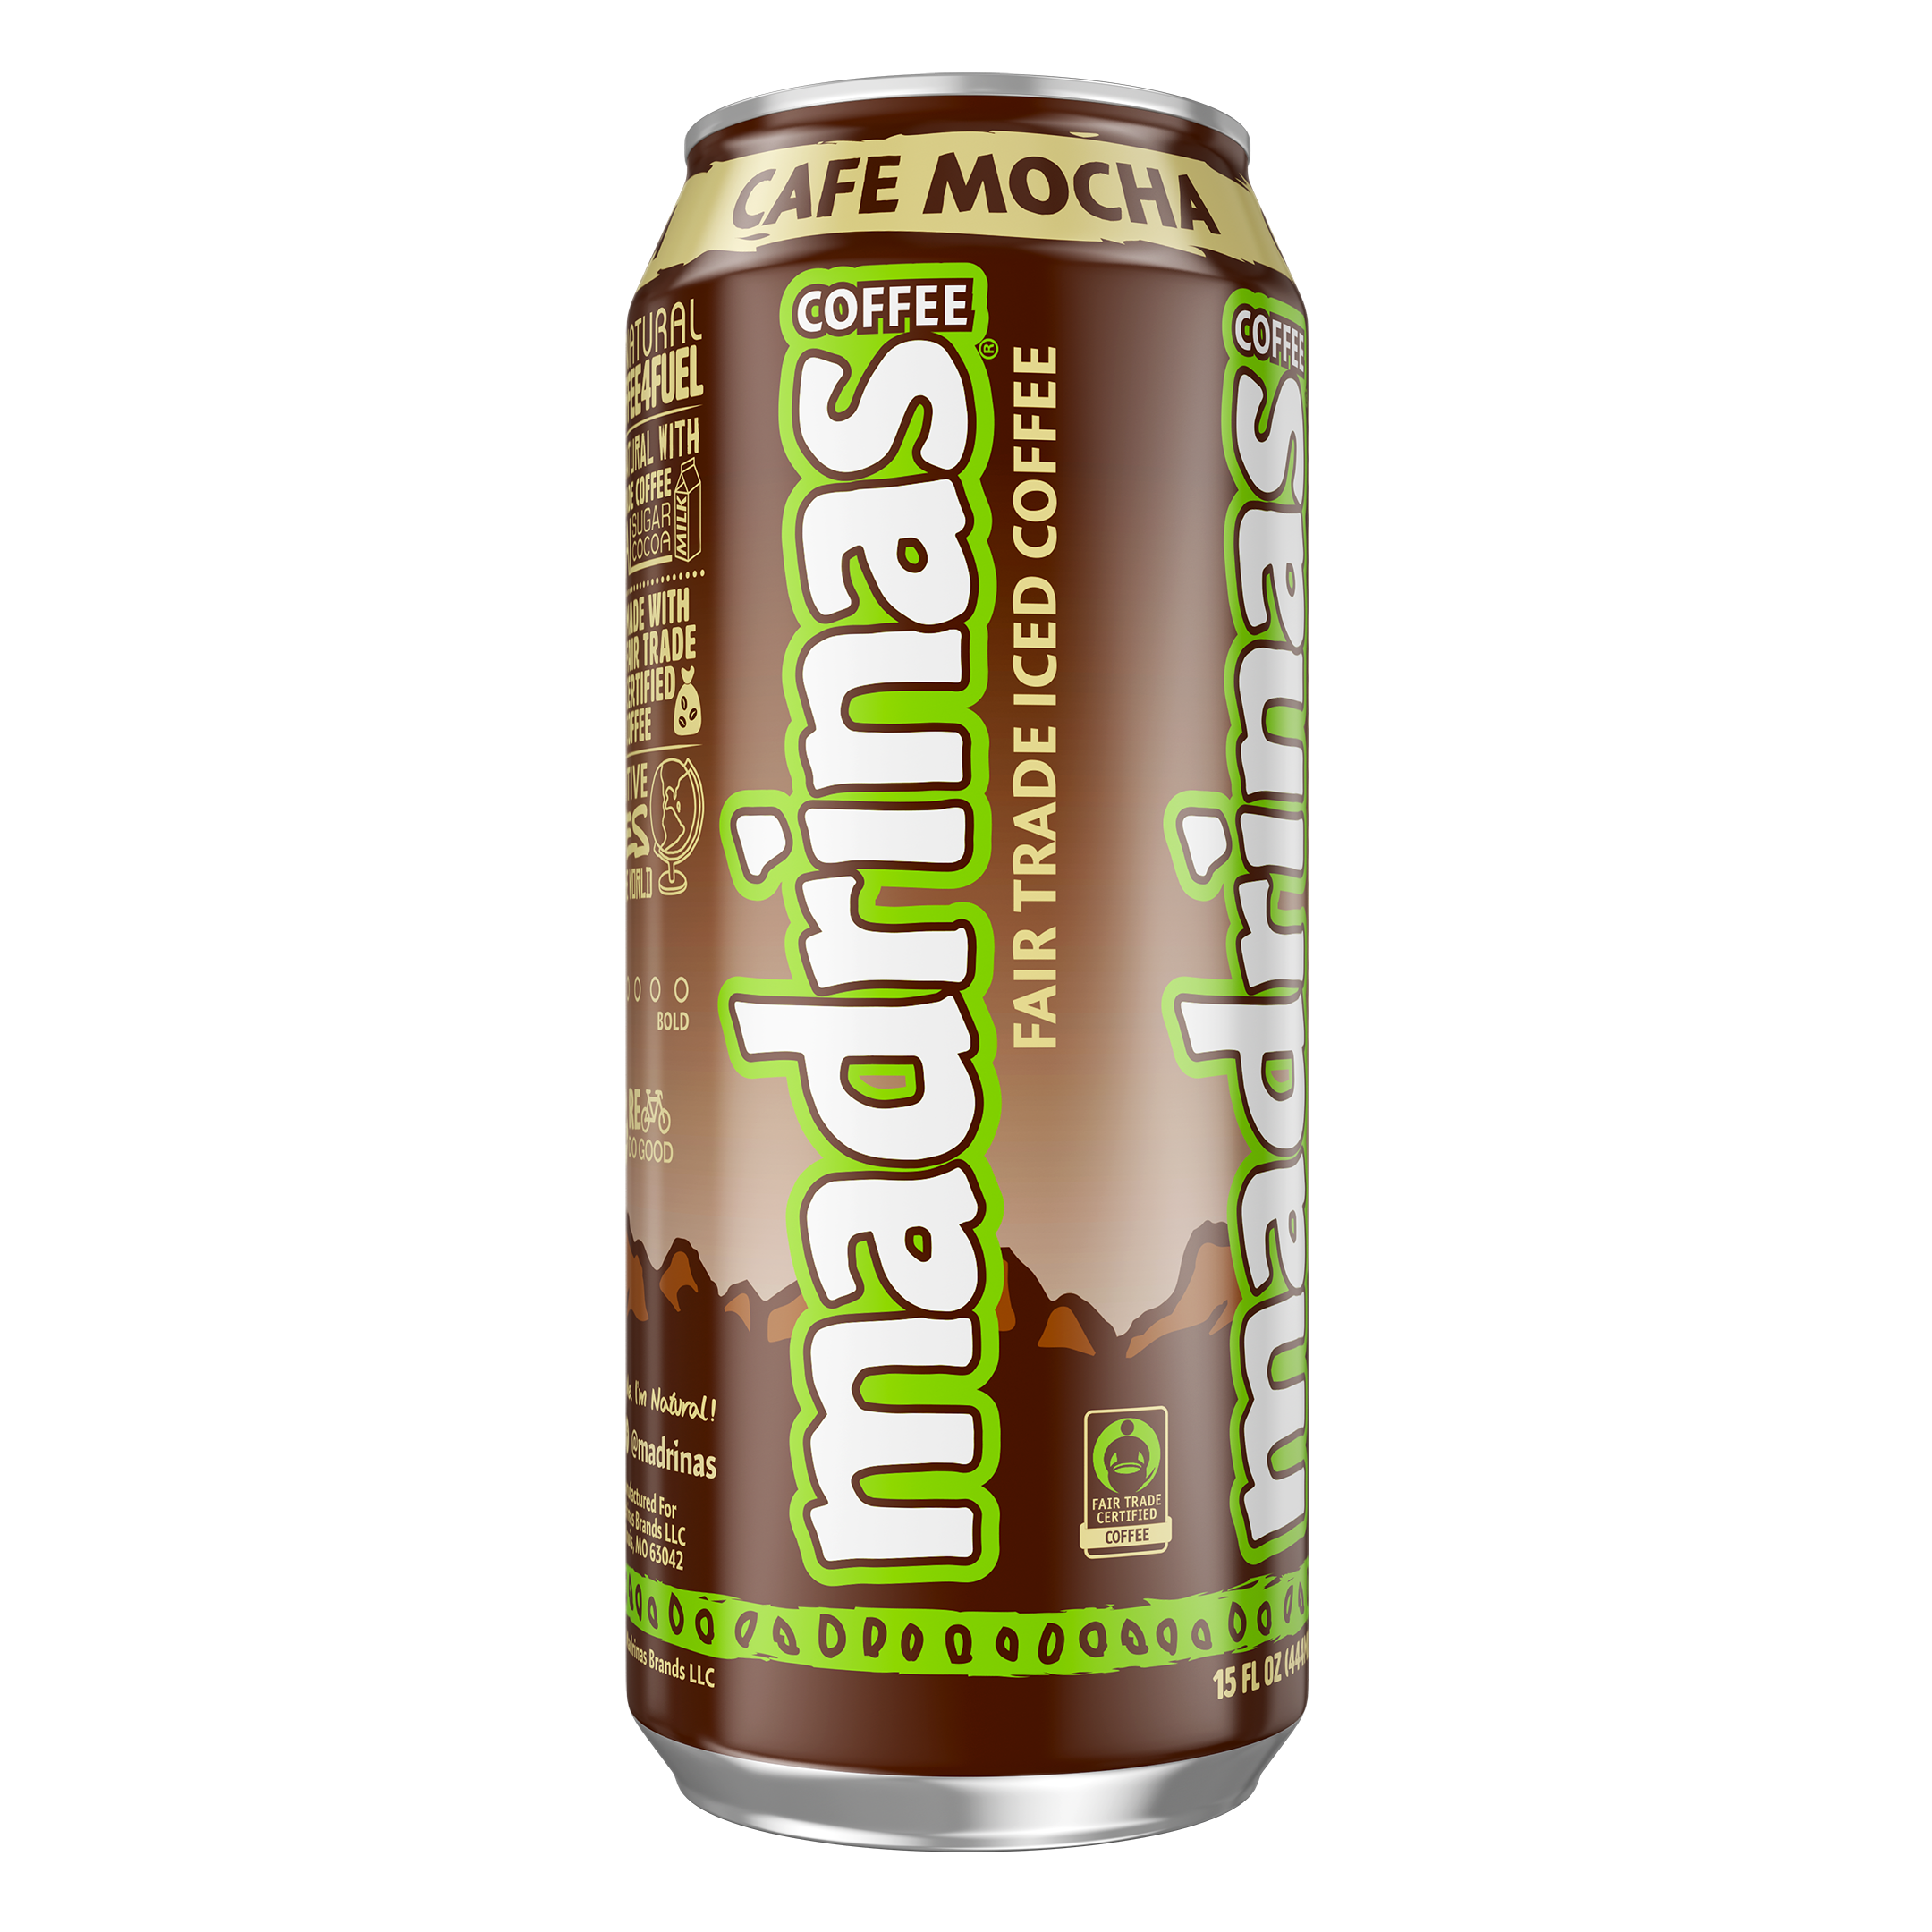 Madrinas Cafe Mocha Fair Trade Cold Brew 15 Fl Oz Pack Of 12 Walmart Com Walmart Com Running out of coffee the solution: madrinas cafe mocha fair trade cold brew 15 fl oz pack of 12 walmart com